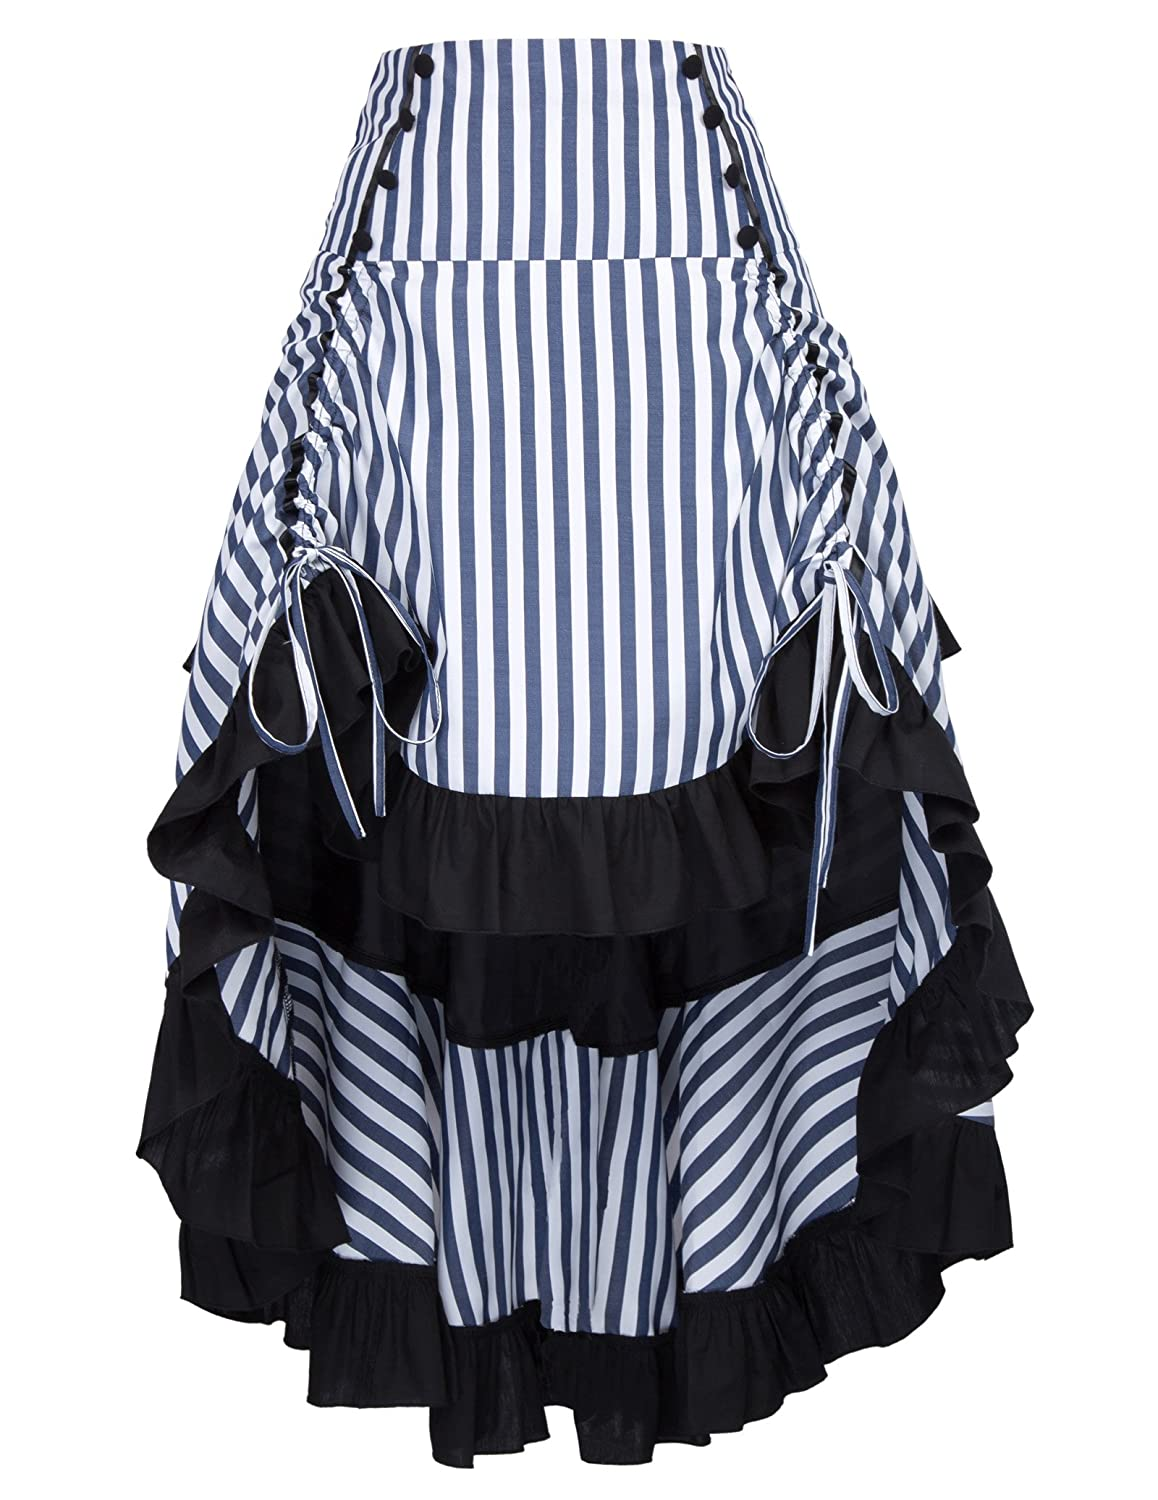 Steampunk Plus Size Clothing & Costumes Belle Poque Striped Steampunk Gothic Victorian High Low Skirt Bustle Style $37.99 AT vintagedancer.com